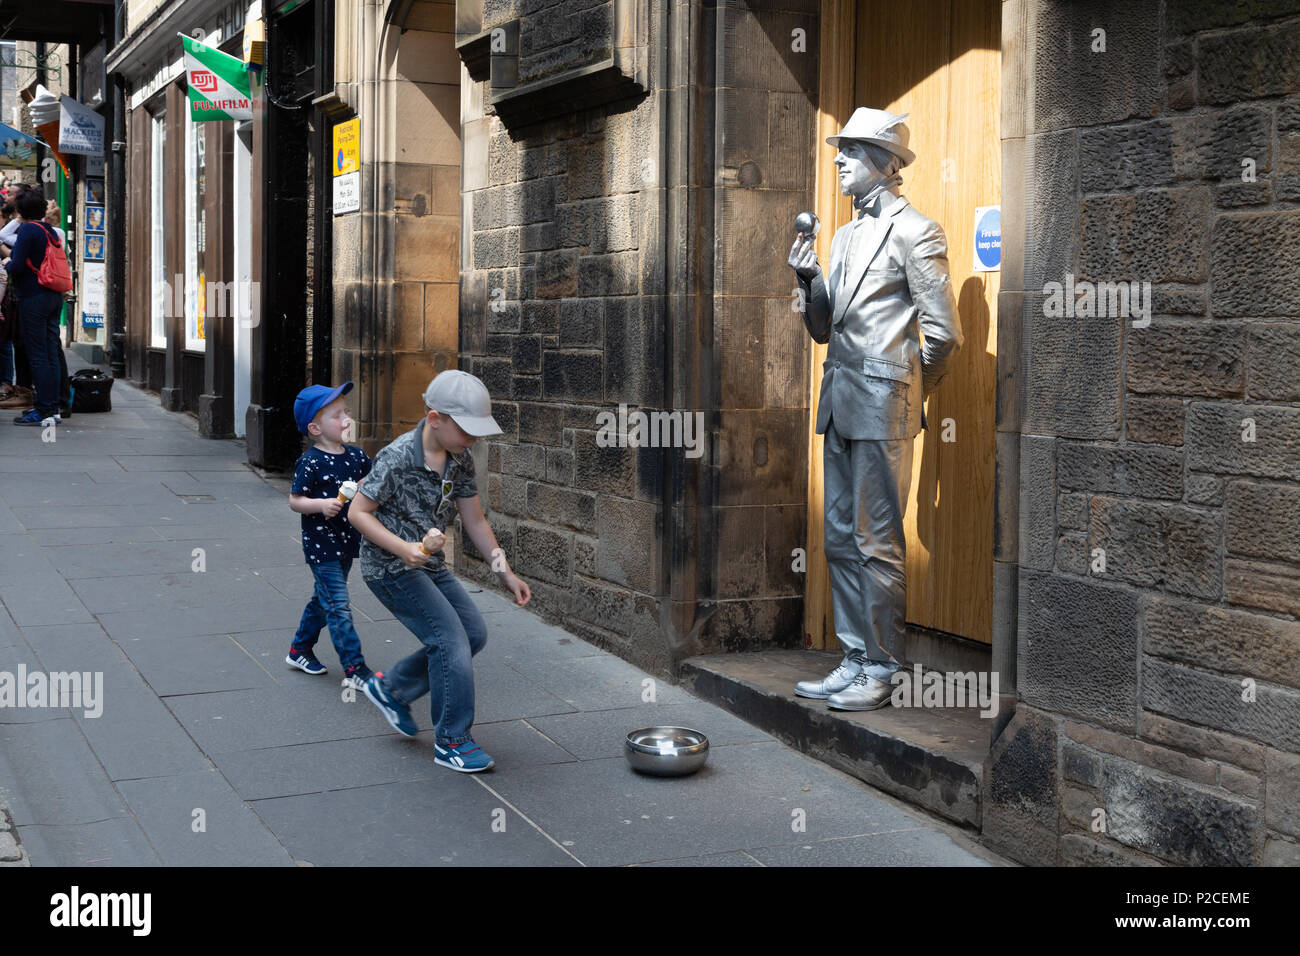 Children giving money to a street performer performing, the Royal Mile, Edinburgh old town, Scotland UK - Stock Image